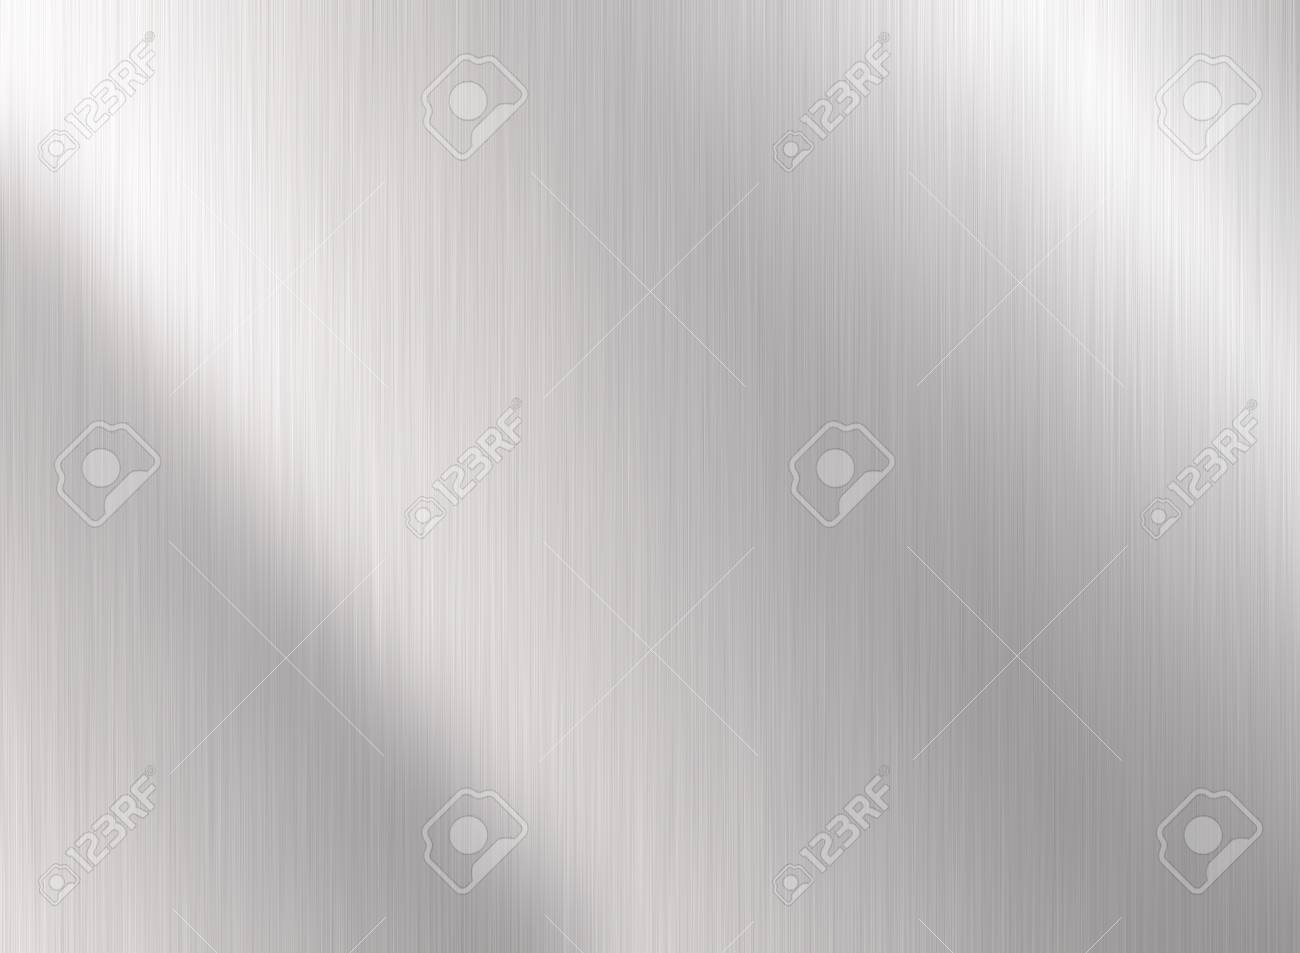 metal background Stock Photo - 20176978